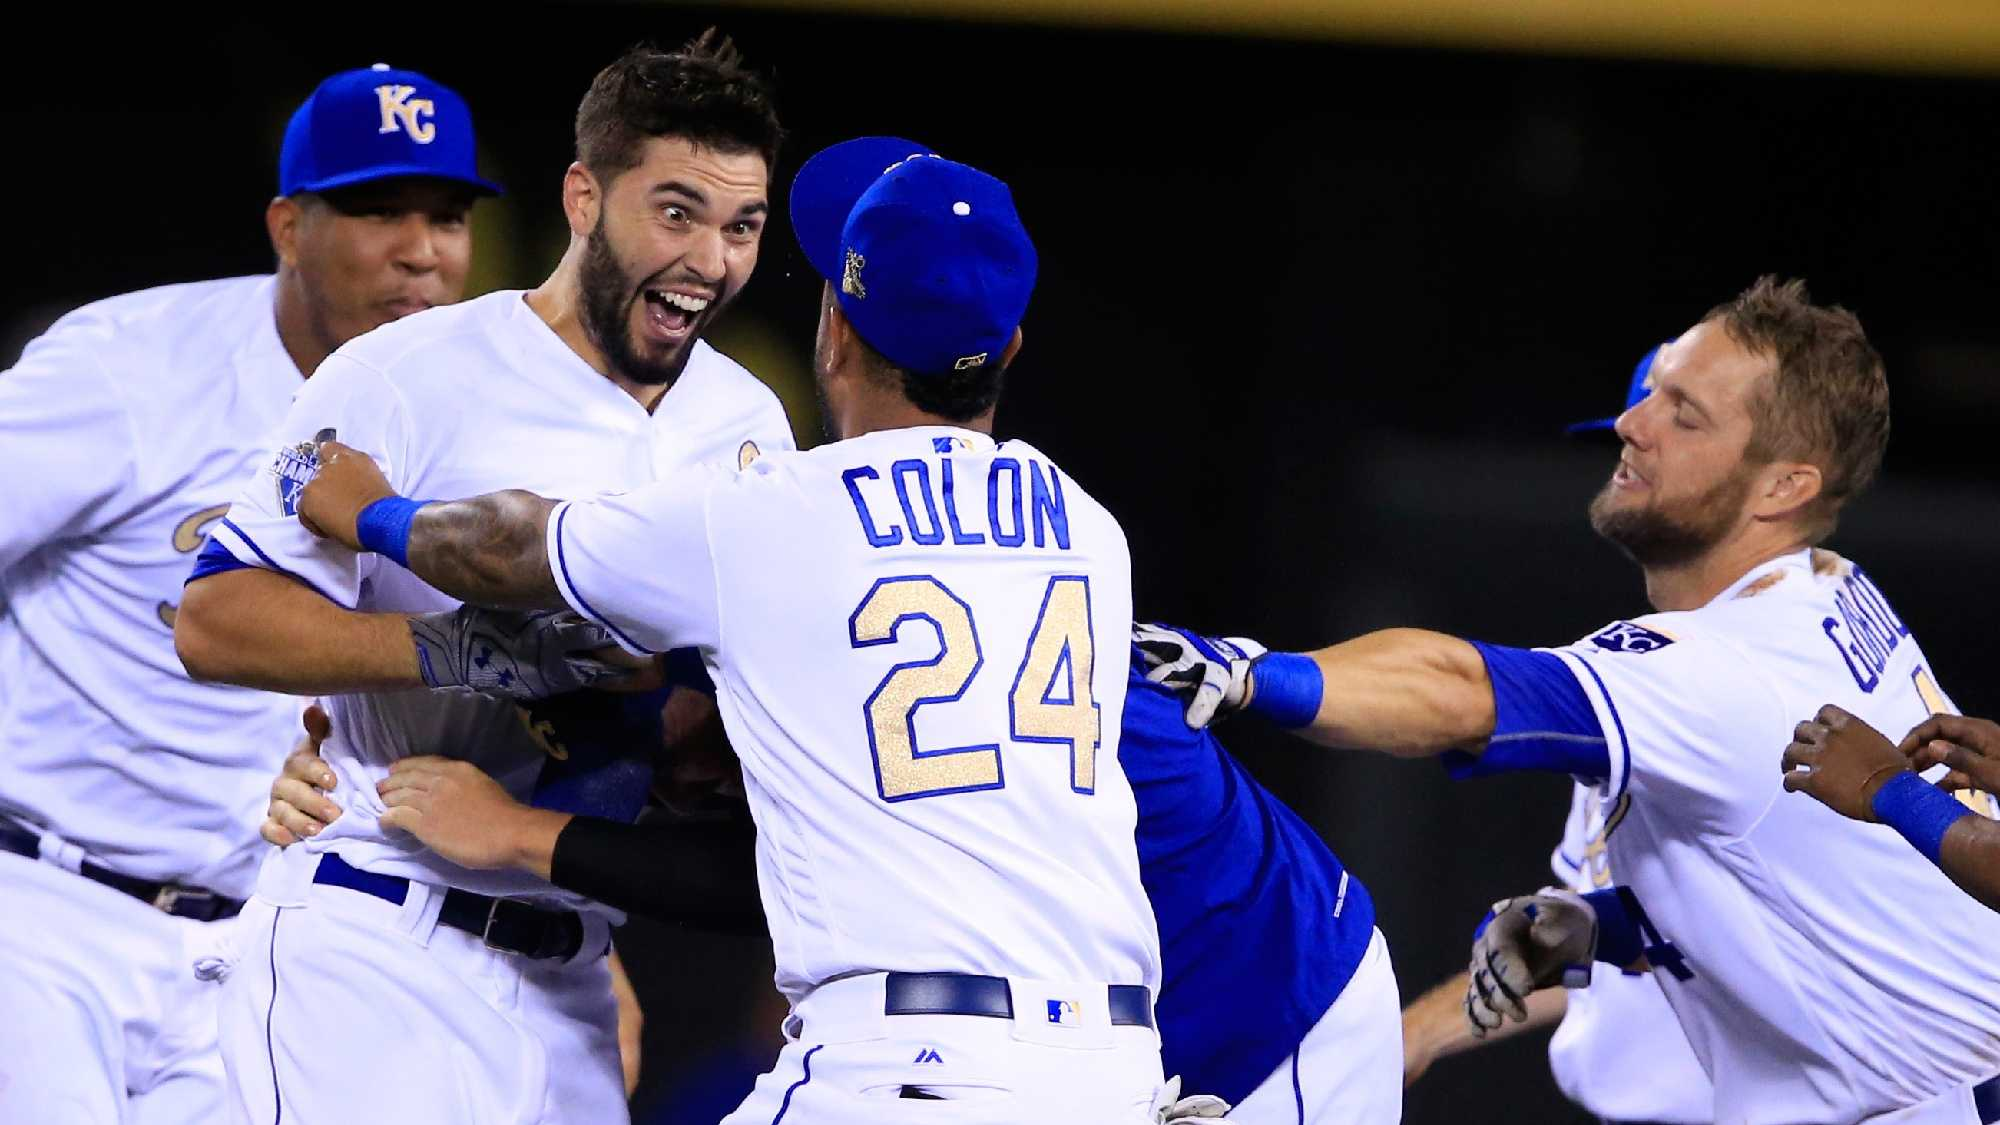 Kansas City Royals' Eric Hosmer (35) gets doused by teammate Salvador Perez (13) following a baseball game against the Minnesota Twins at Kauffman Stadium in Kansas City, Mo., Saturday, Aug. 20, 2016. Hosmer drove in the winning run. The Royals defeated the Twins 5-4 in 11 innings. (AP Photo/Orlin Wagner)